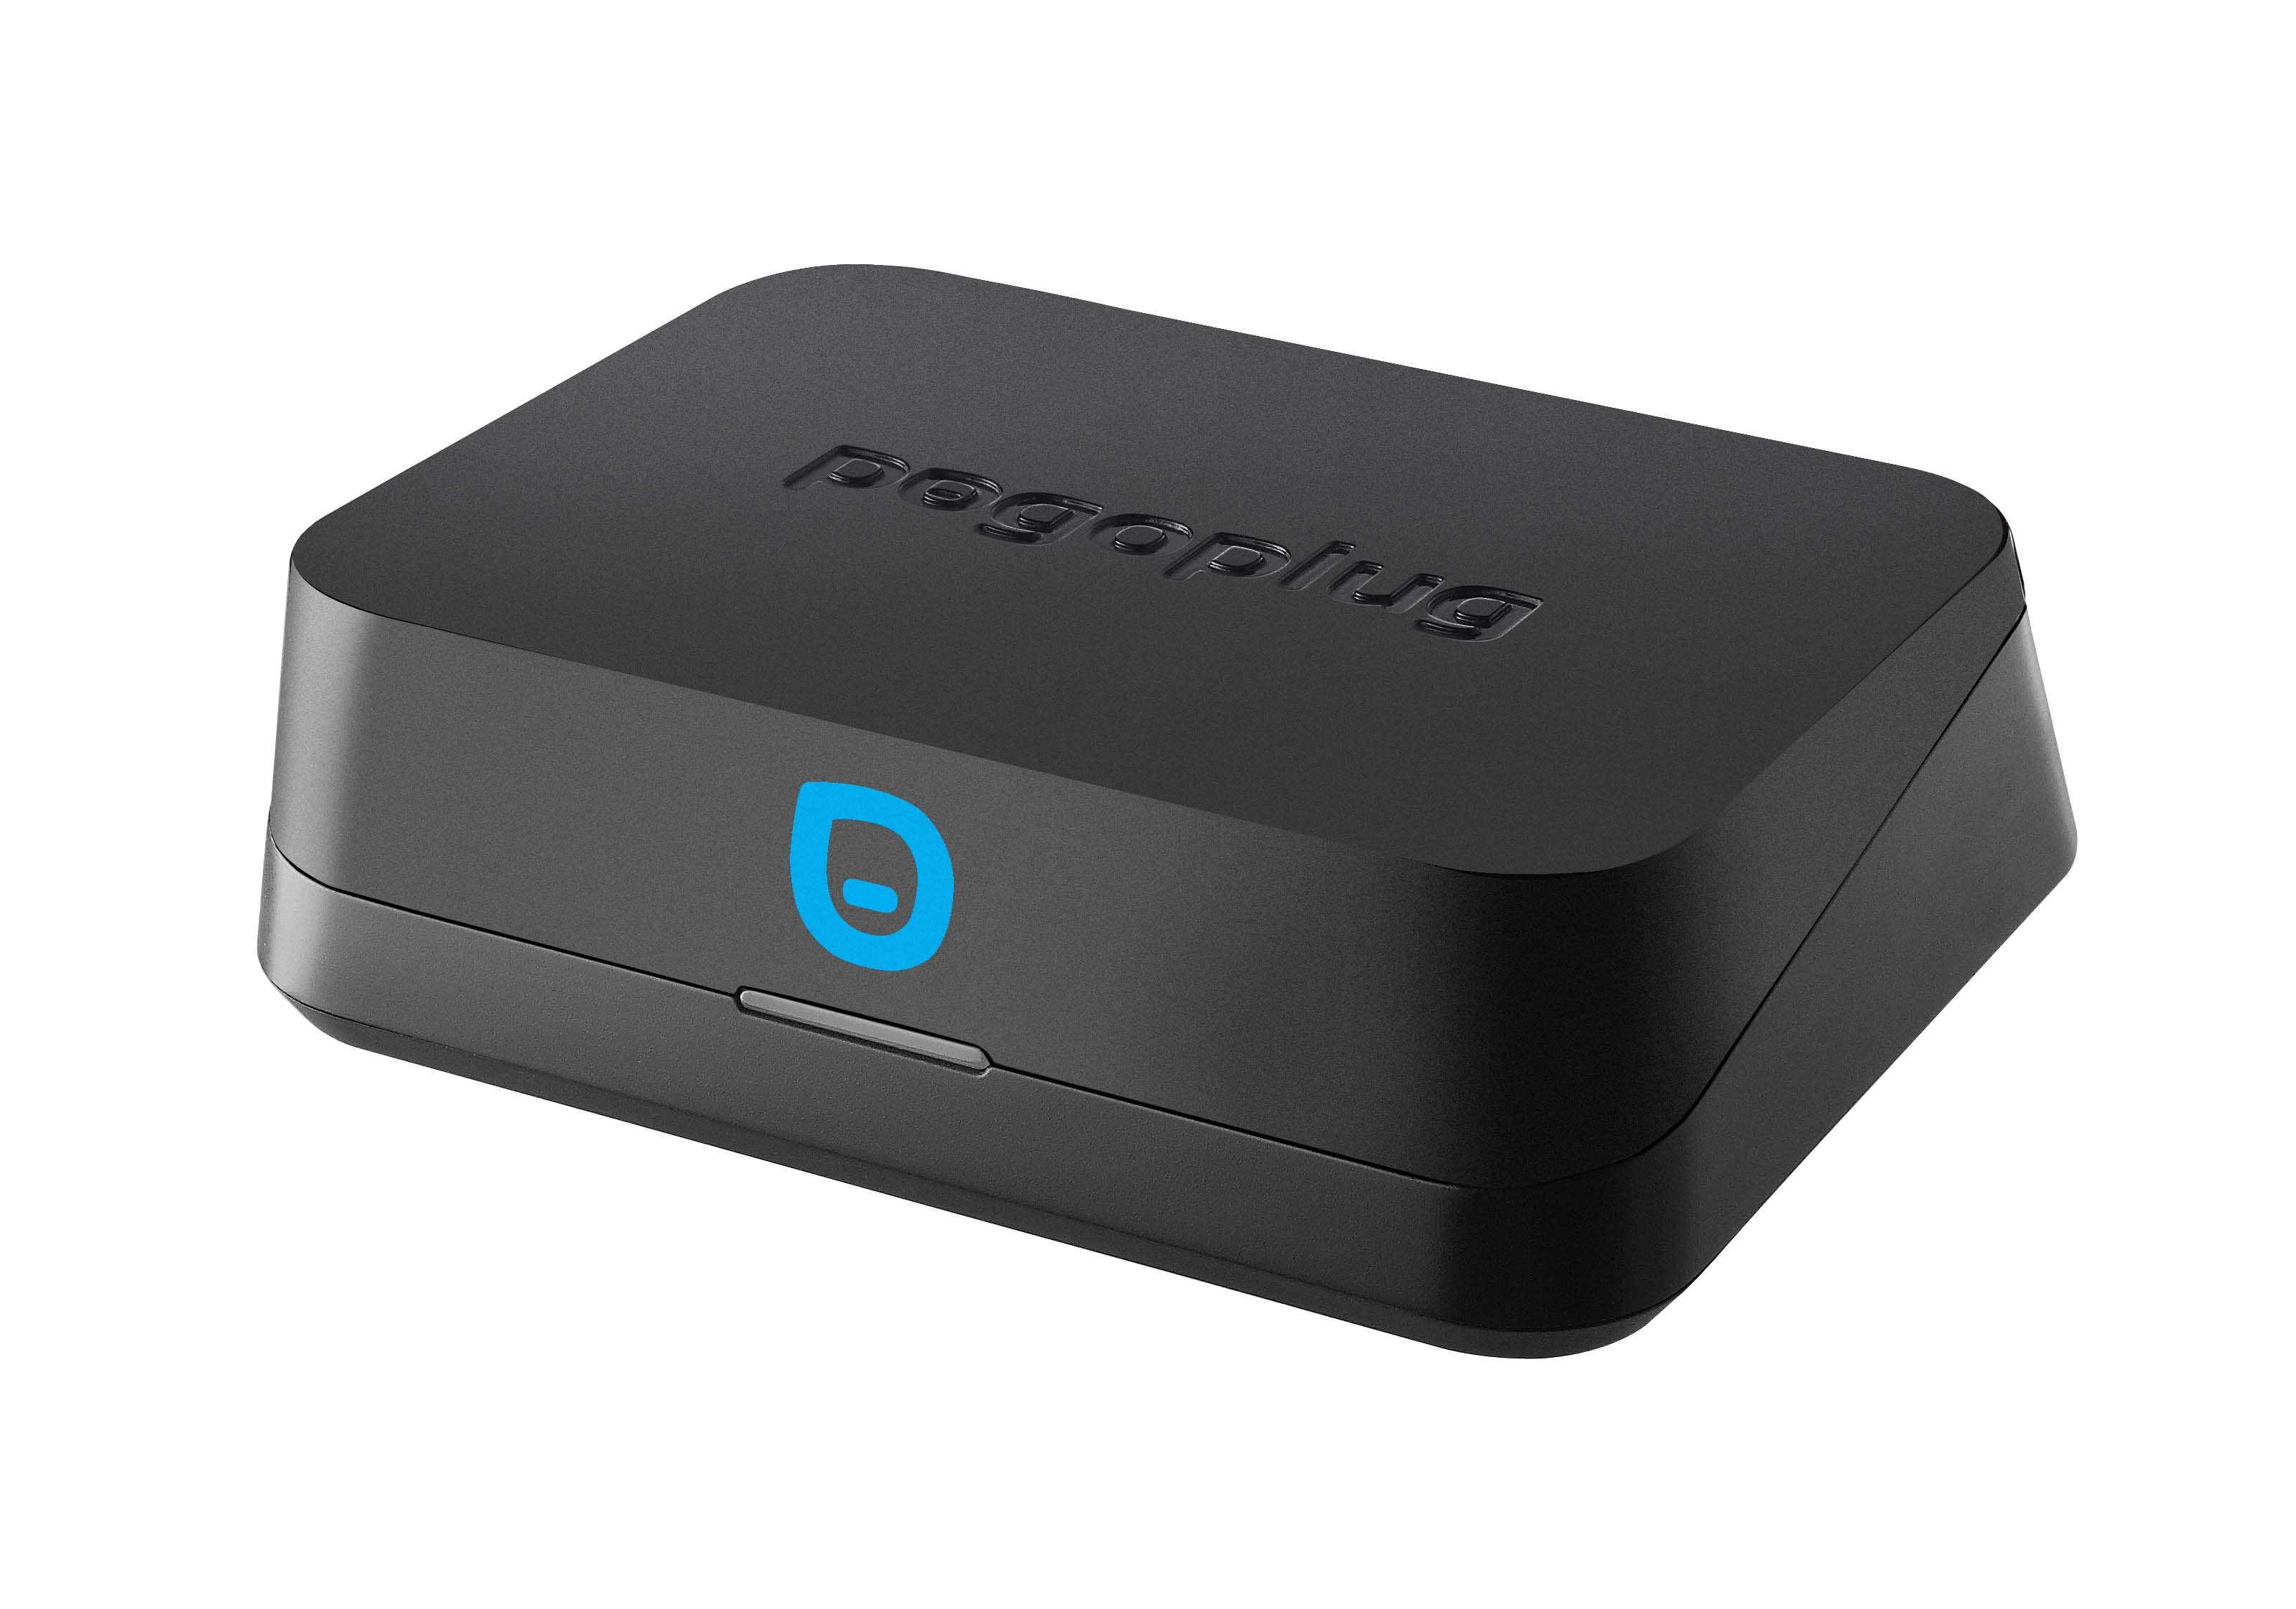 Pogoplug Mobile brings unlimited media streaming to your phone or device